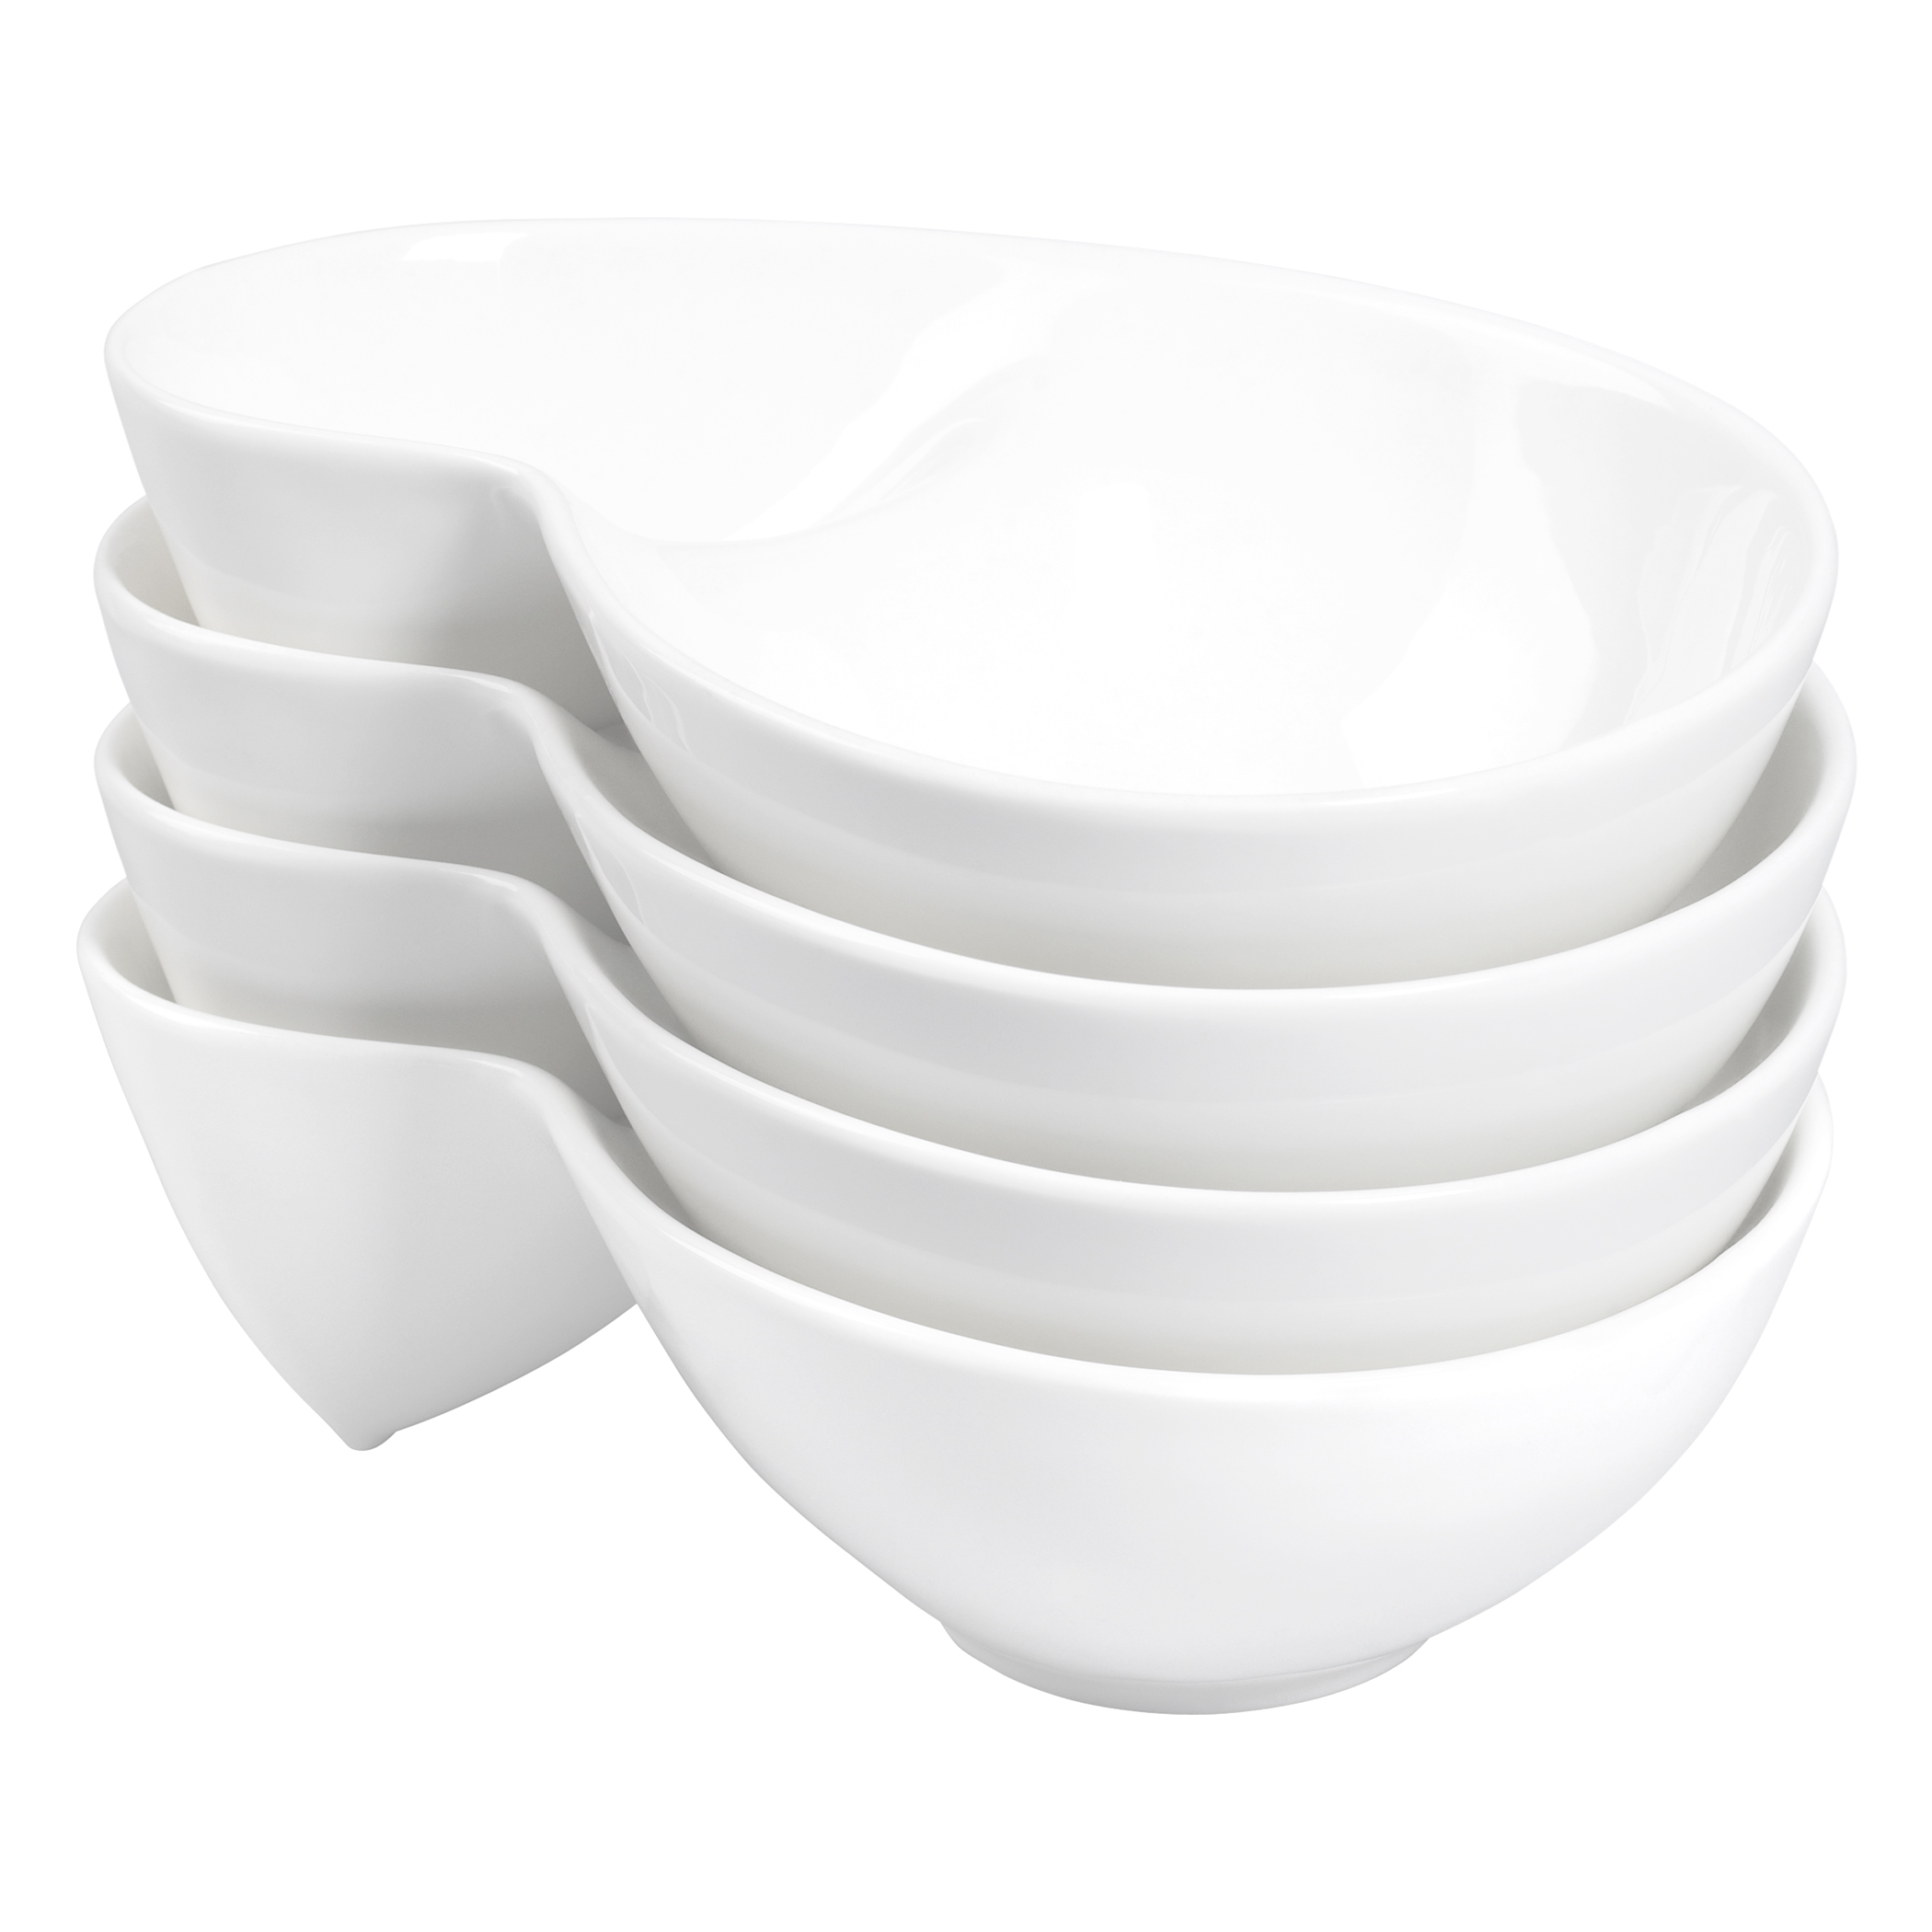 TTU-T1323-EC-Oven to Table Set of Four Vitrified Porcelain Chip Œn¹  sc 1 st  Tabletops Unlimited & Oven to Table Set of Four Vitrified Porcelain Chip \u0027n\u0027 Dip Bowls by ...